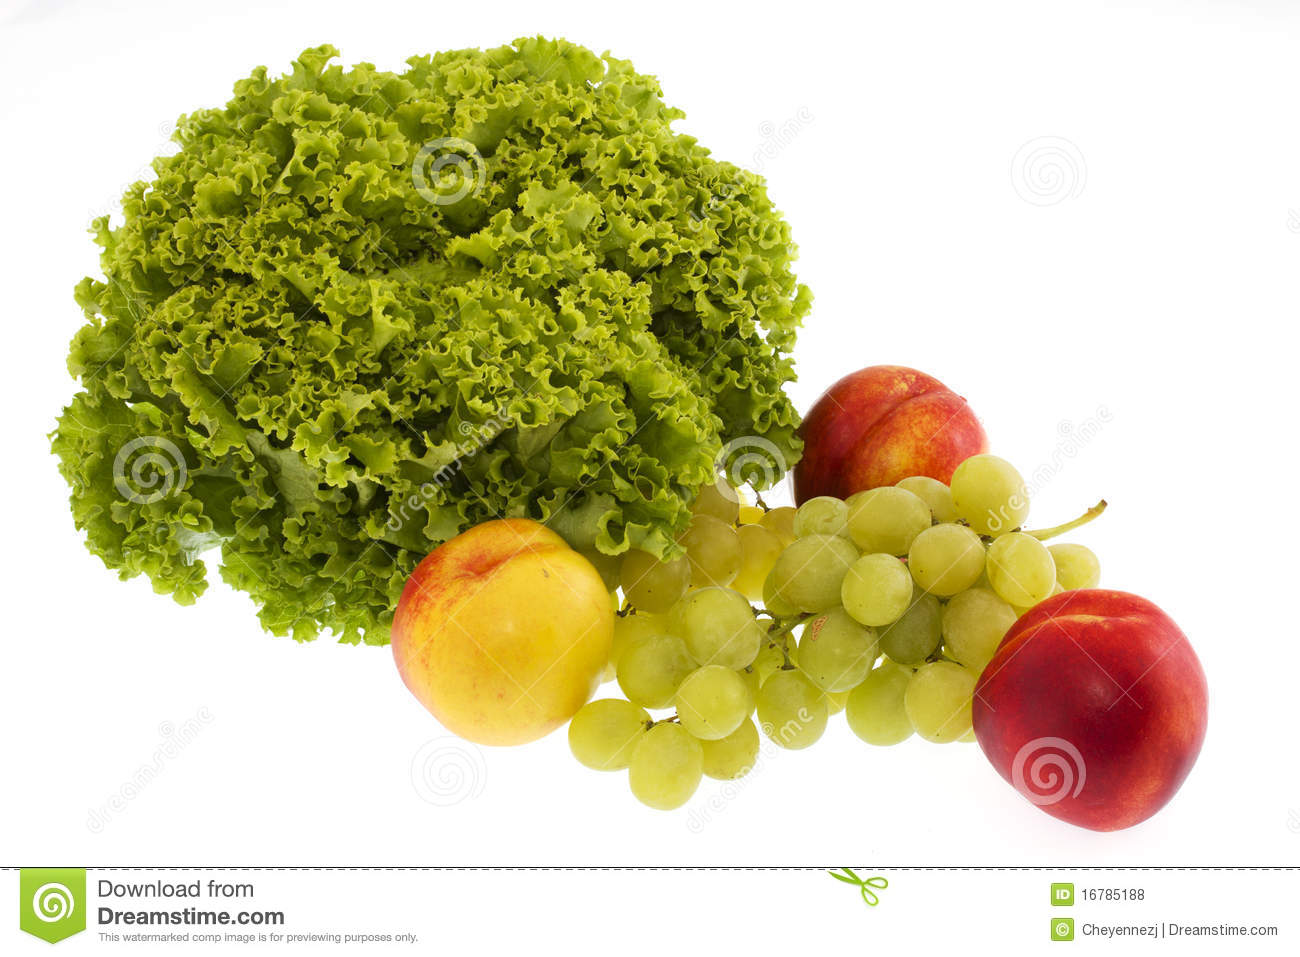 Free Images of Nutritious Foods